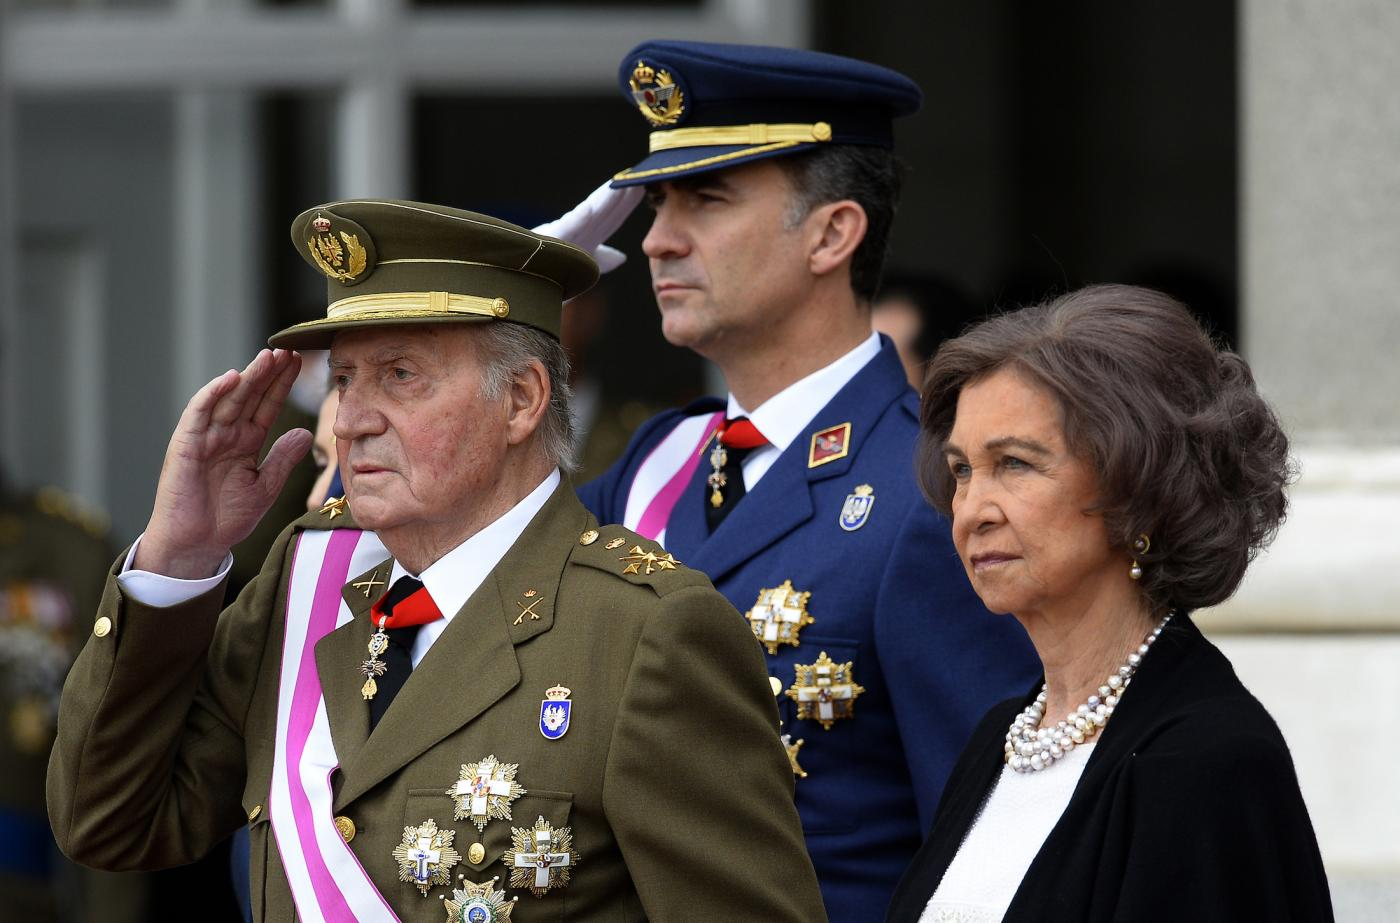 Spain's king Juan Carlos with his son and wife